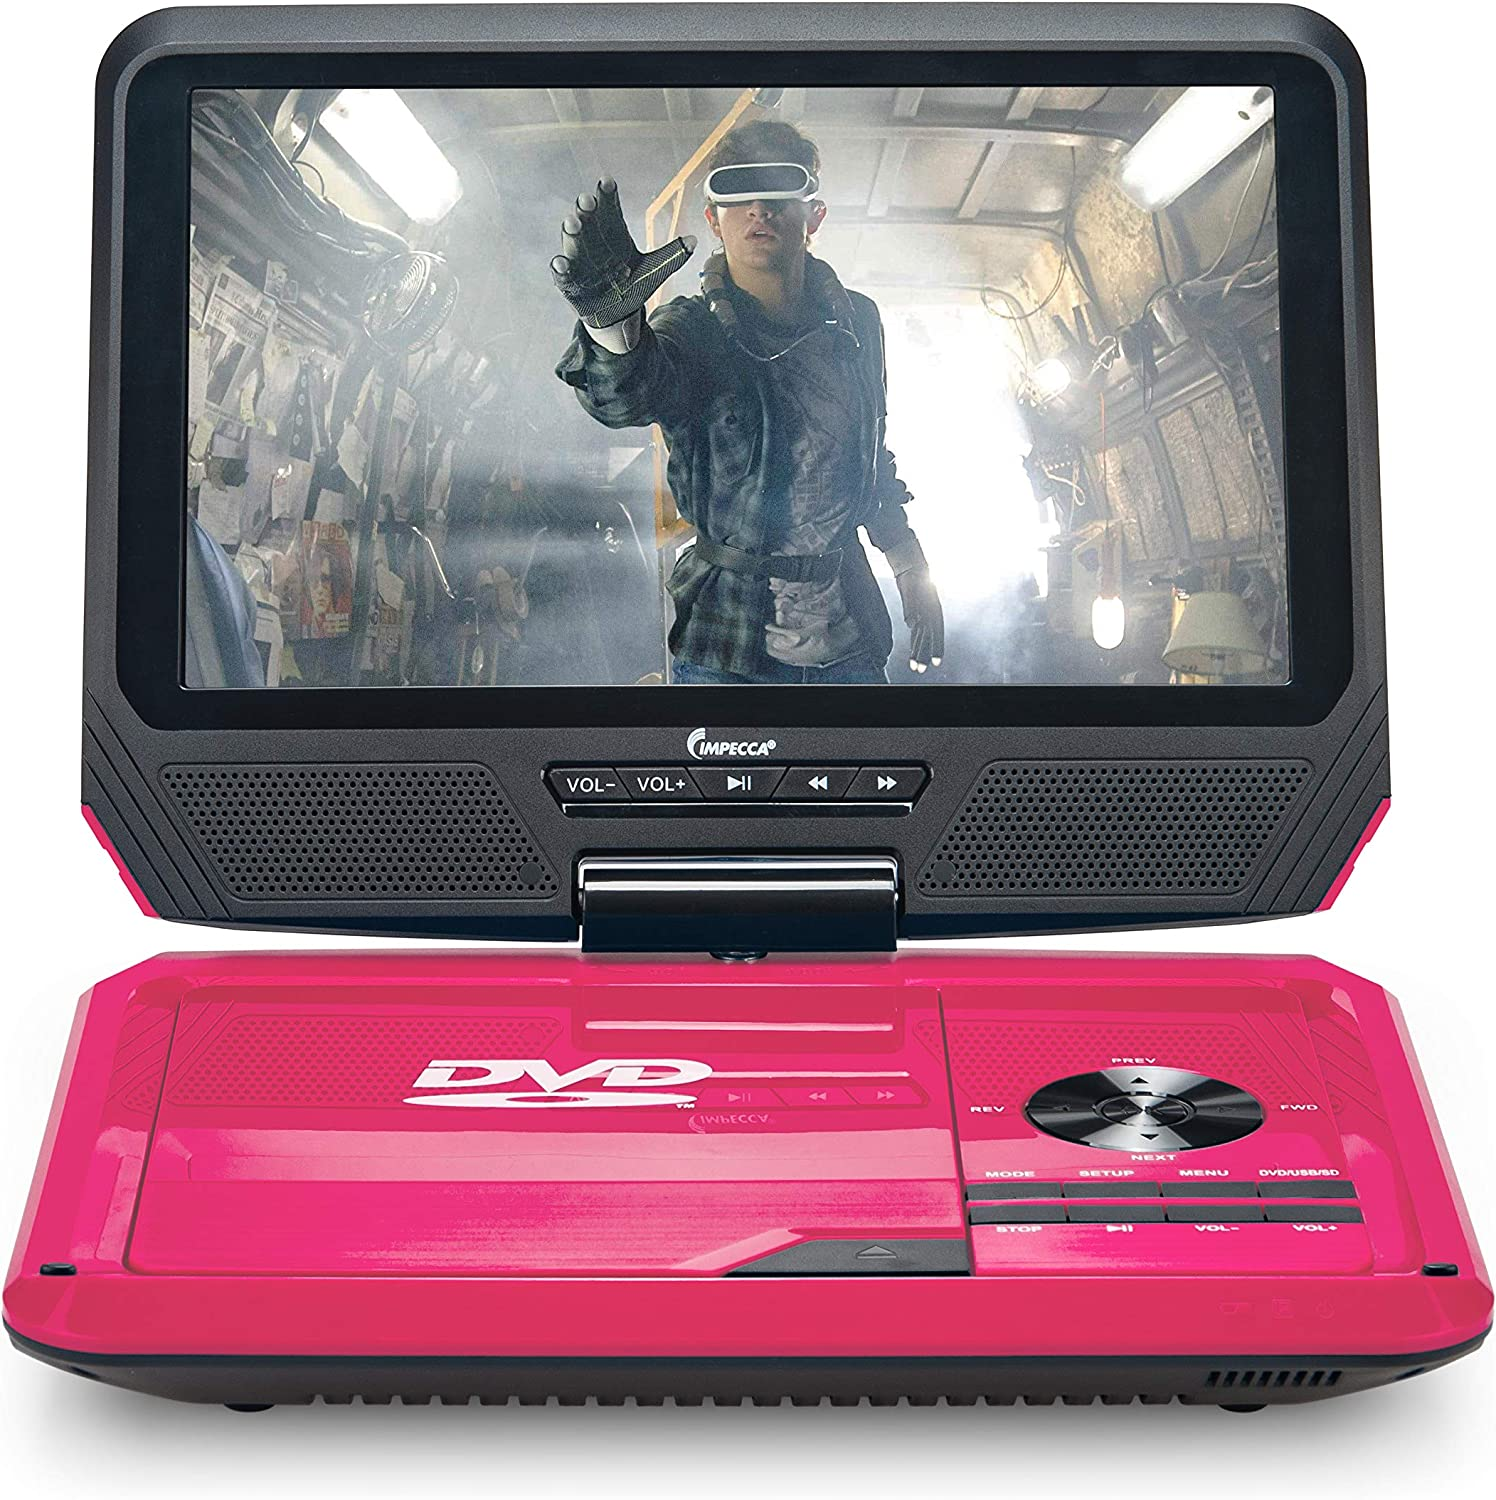 "Impecca 9"" Portable DVD Player Includes Flip and Swivel Screen, Built in USB and SD/SDHC Memory Card Slots, Remote Control"